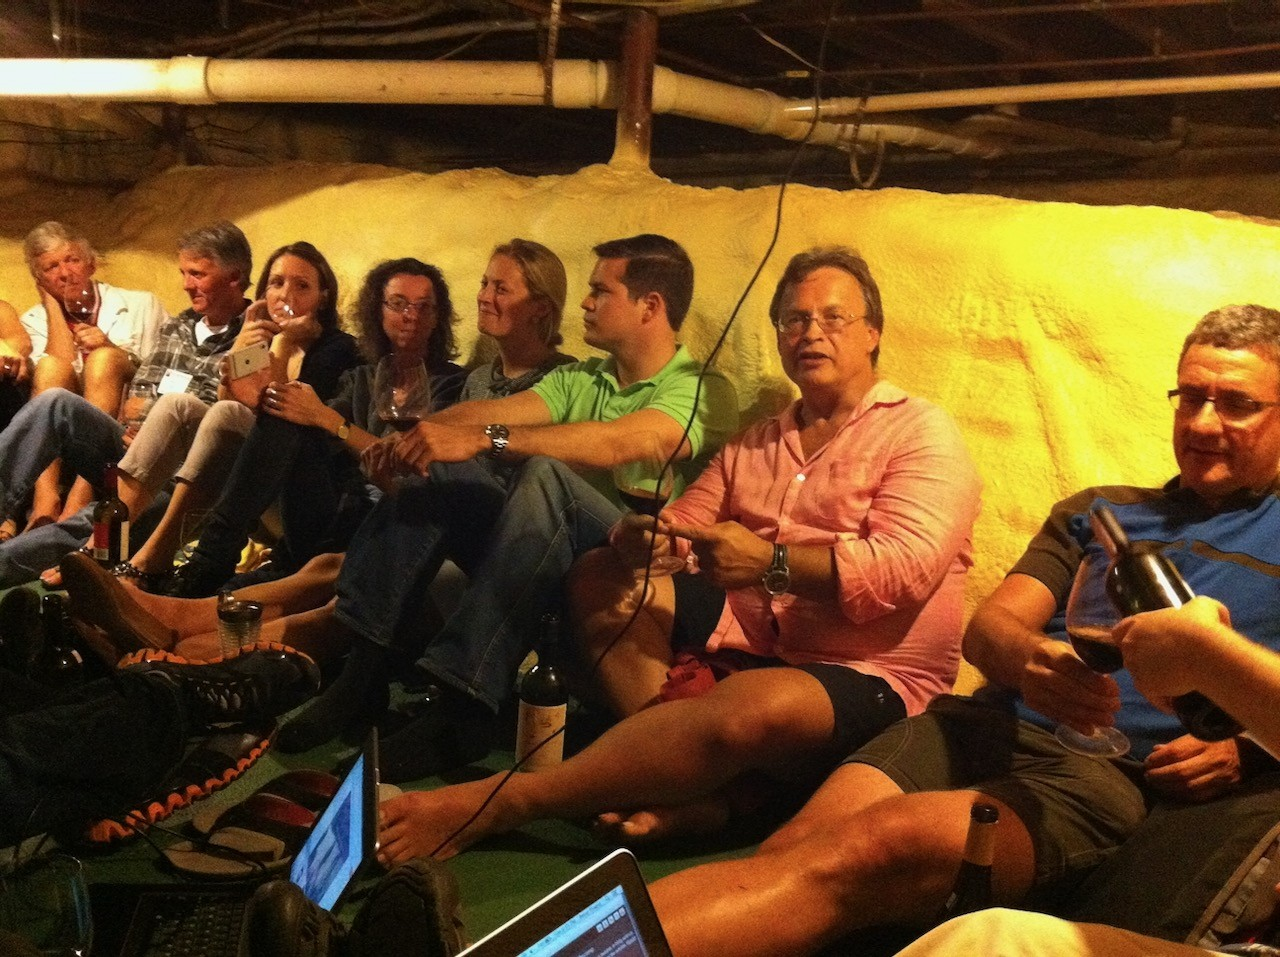 The crawl space wine drinking and Twitterview in 2012.  That's Mike Rogers on the right.